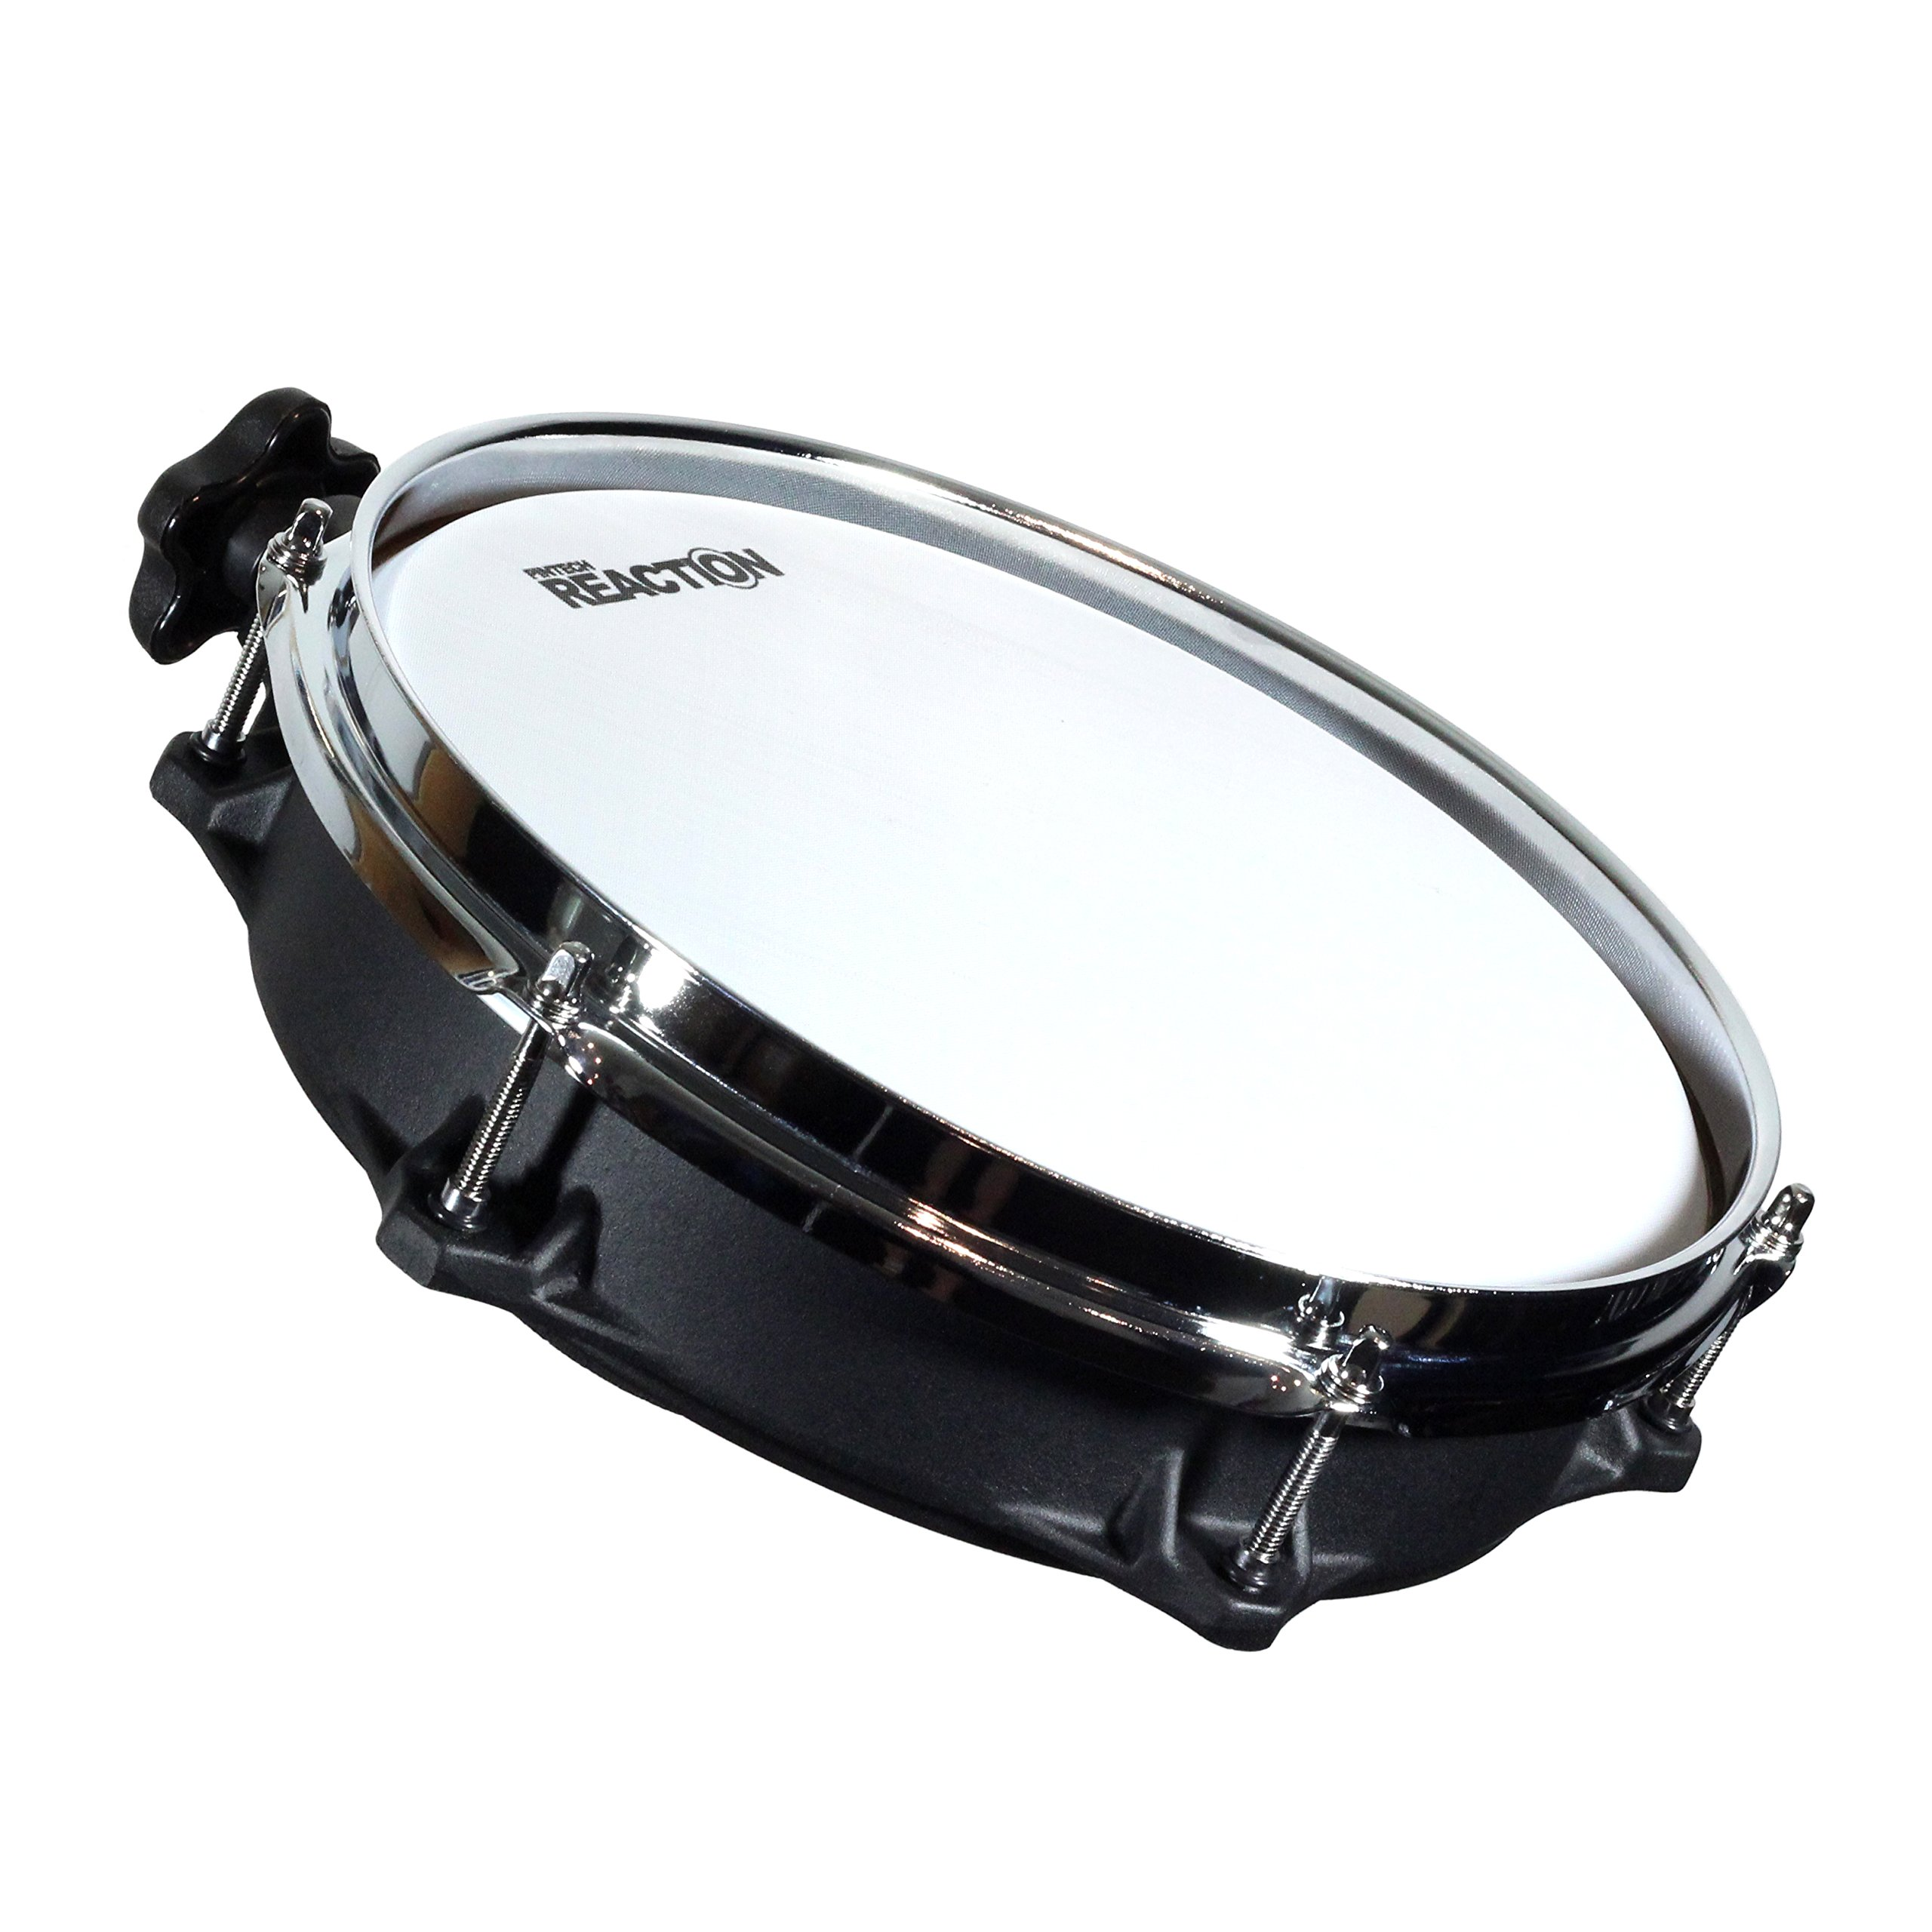 Pintech Percussion CC102B ConcertCast Mesh Drum Pad 10'' Dual Zone by Pintech Percussion